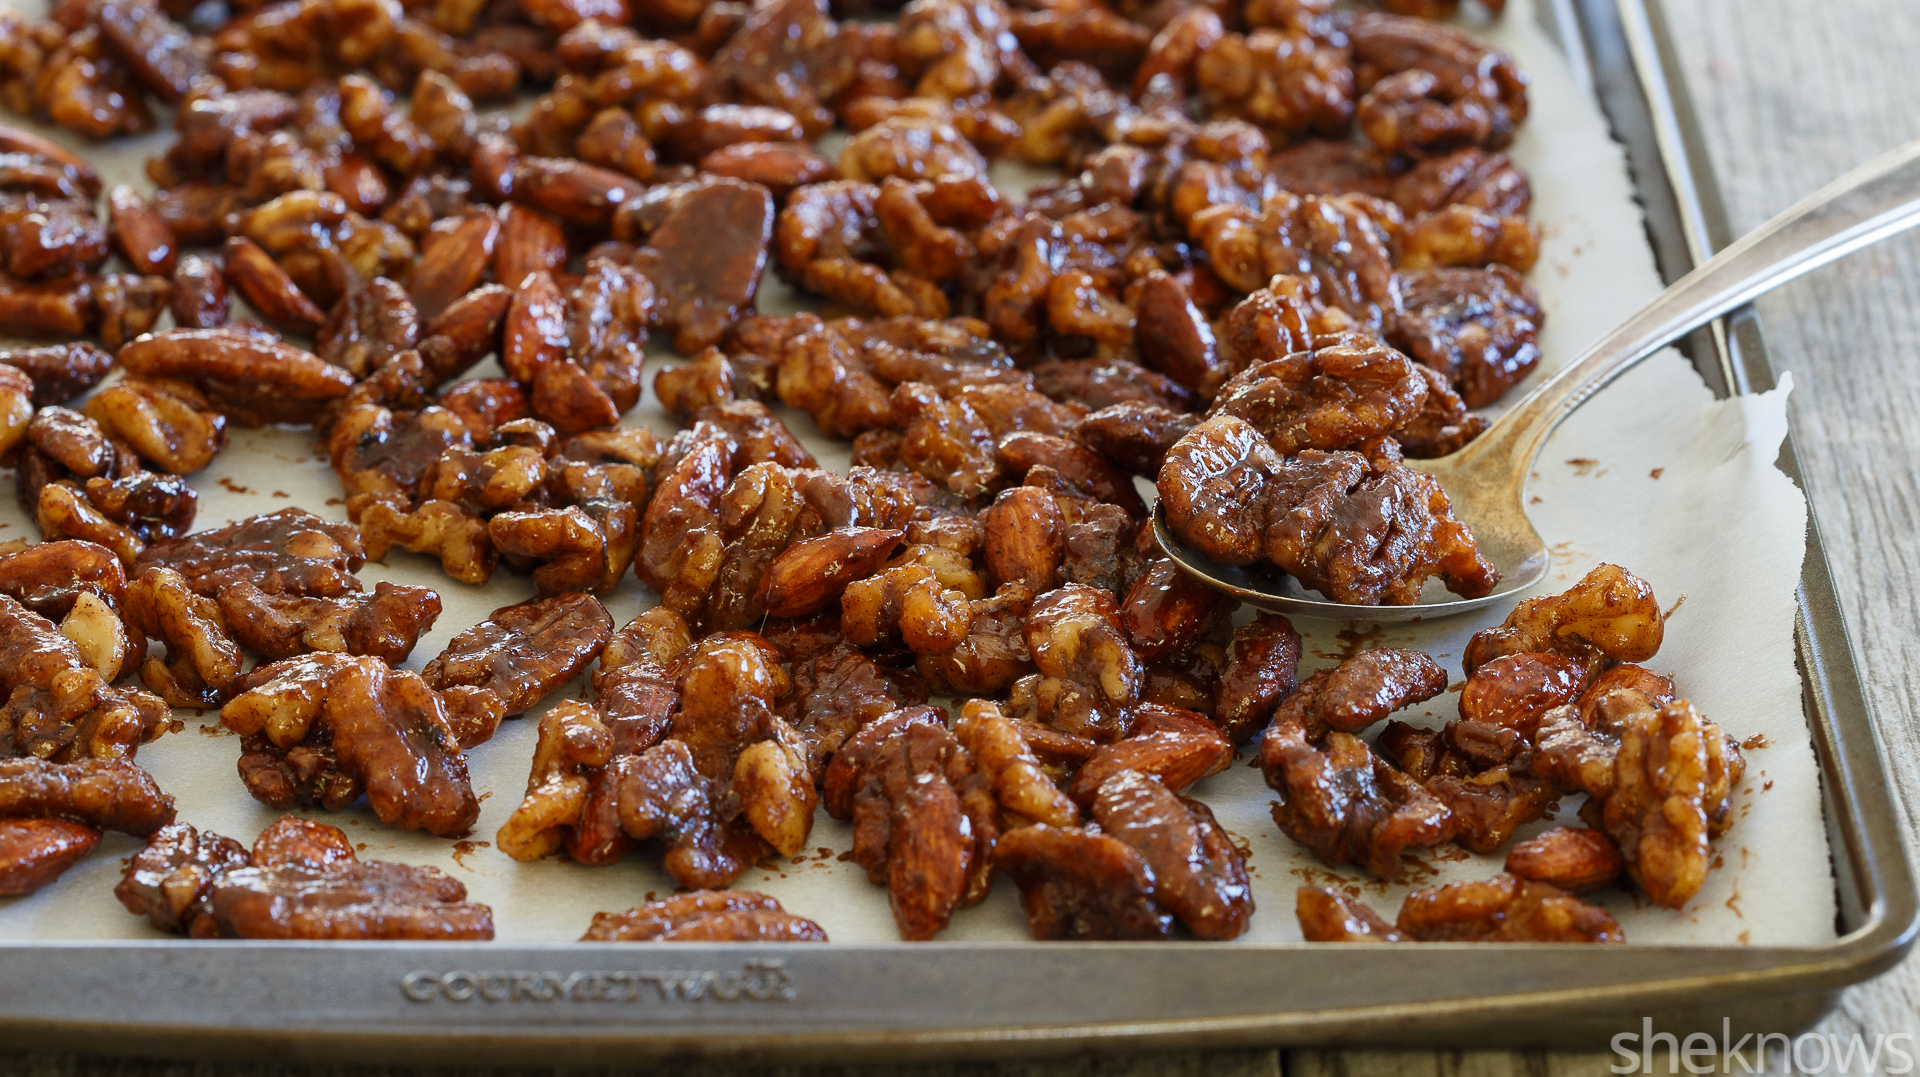 Sweet, spicy and so addictive, slow cooker candied nuts couldn't be easier to make